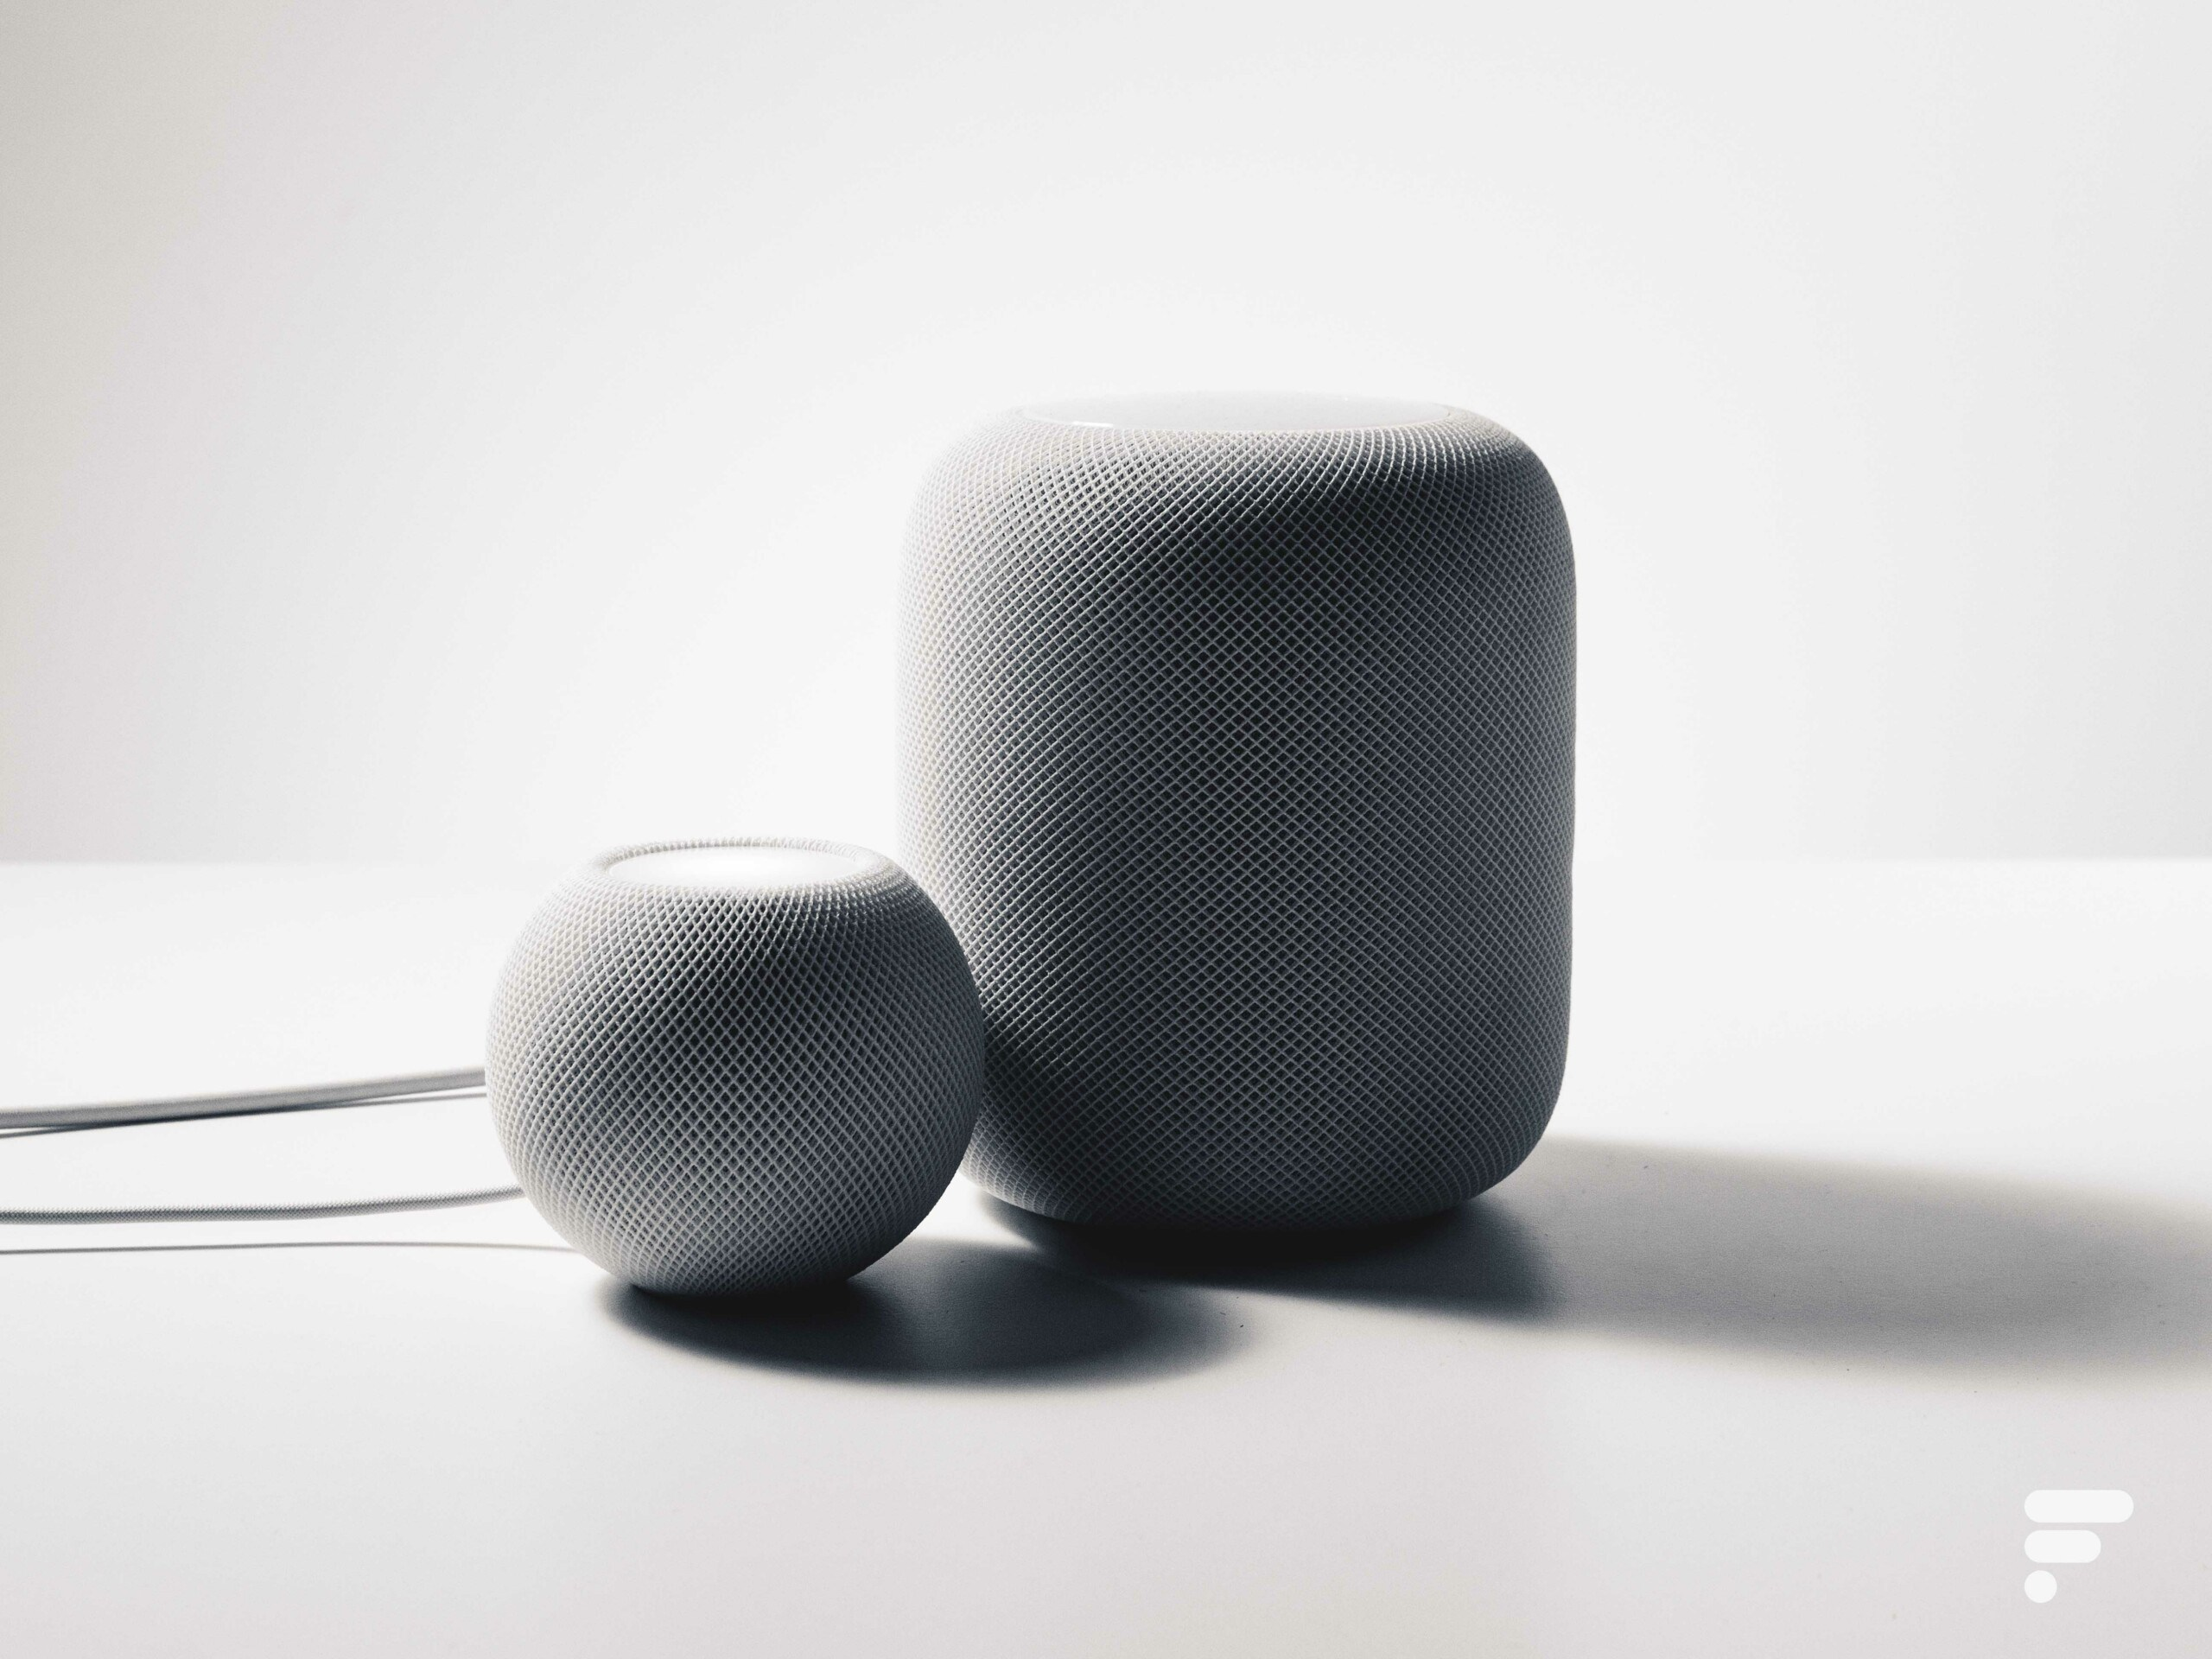 HomePod vs HomePod mini : quelle enceinte connectée d'Apple choisir ?